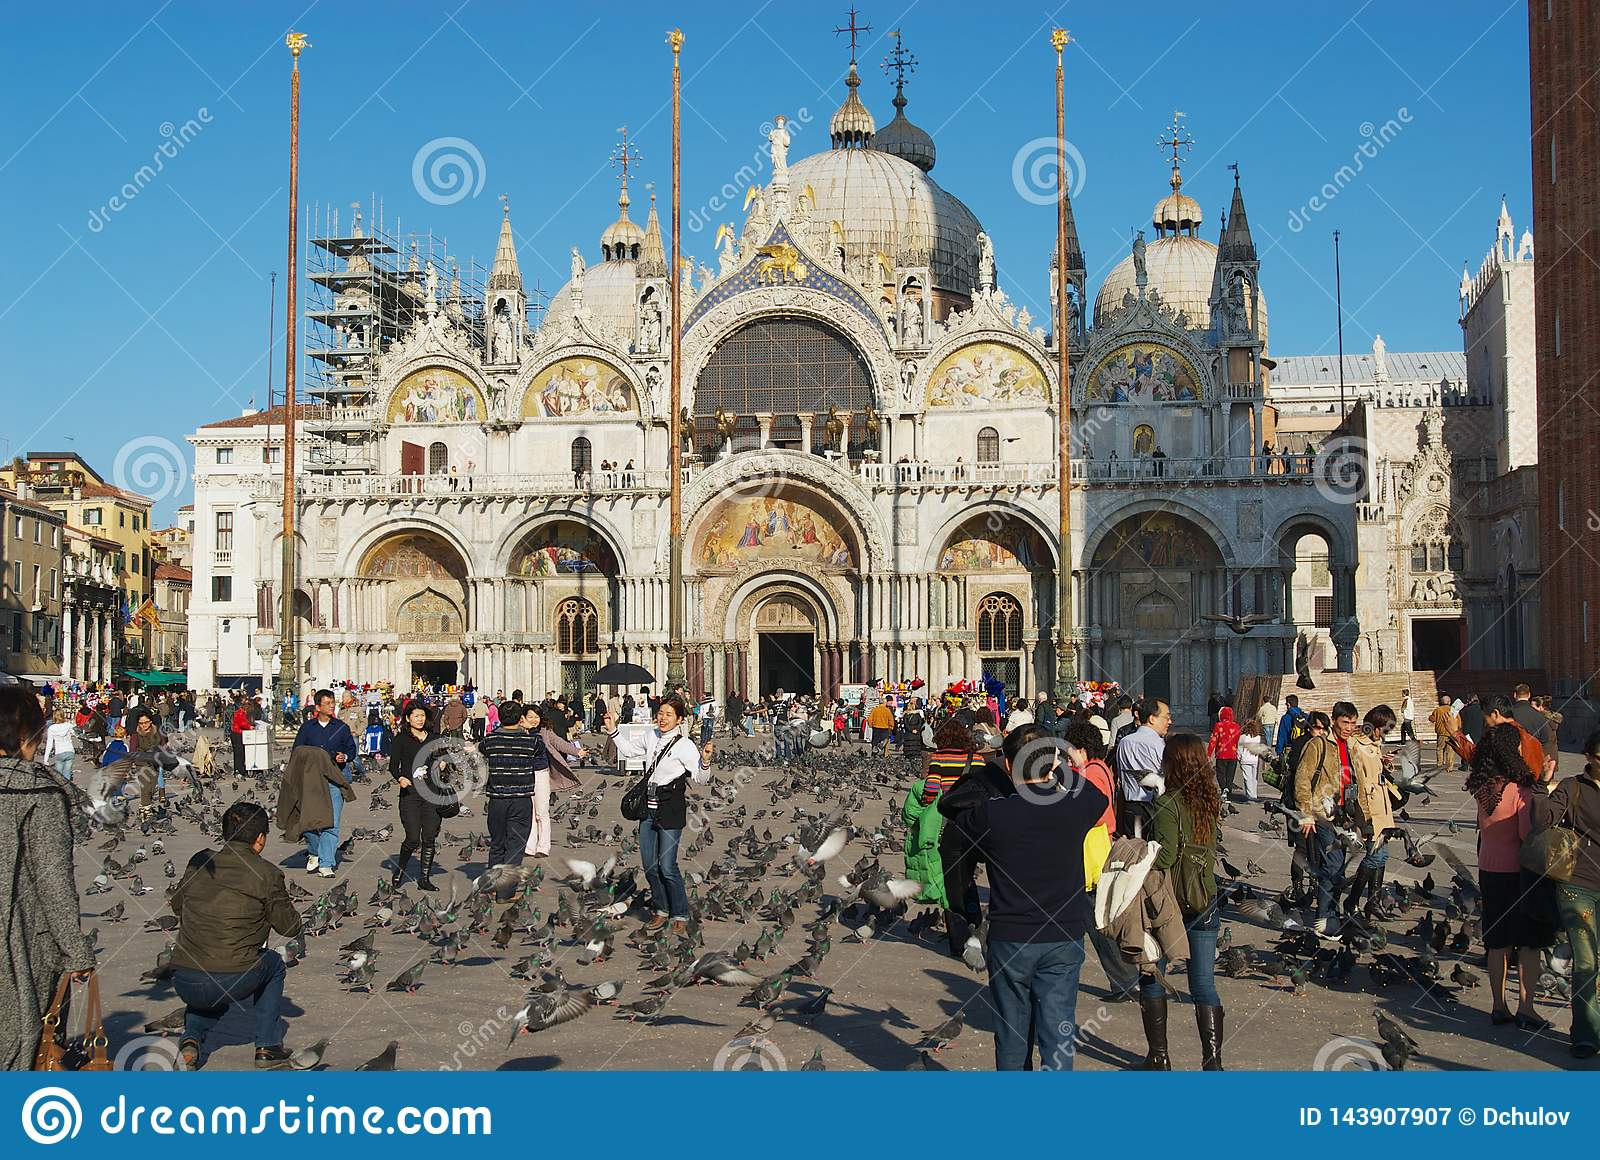 Tourists feed pigeons make photos with Saint Mark Basilica at the background at Piazza San Marco in Venice, Italy.